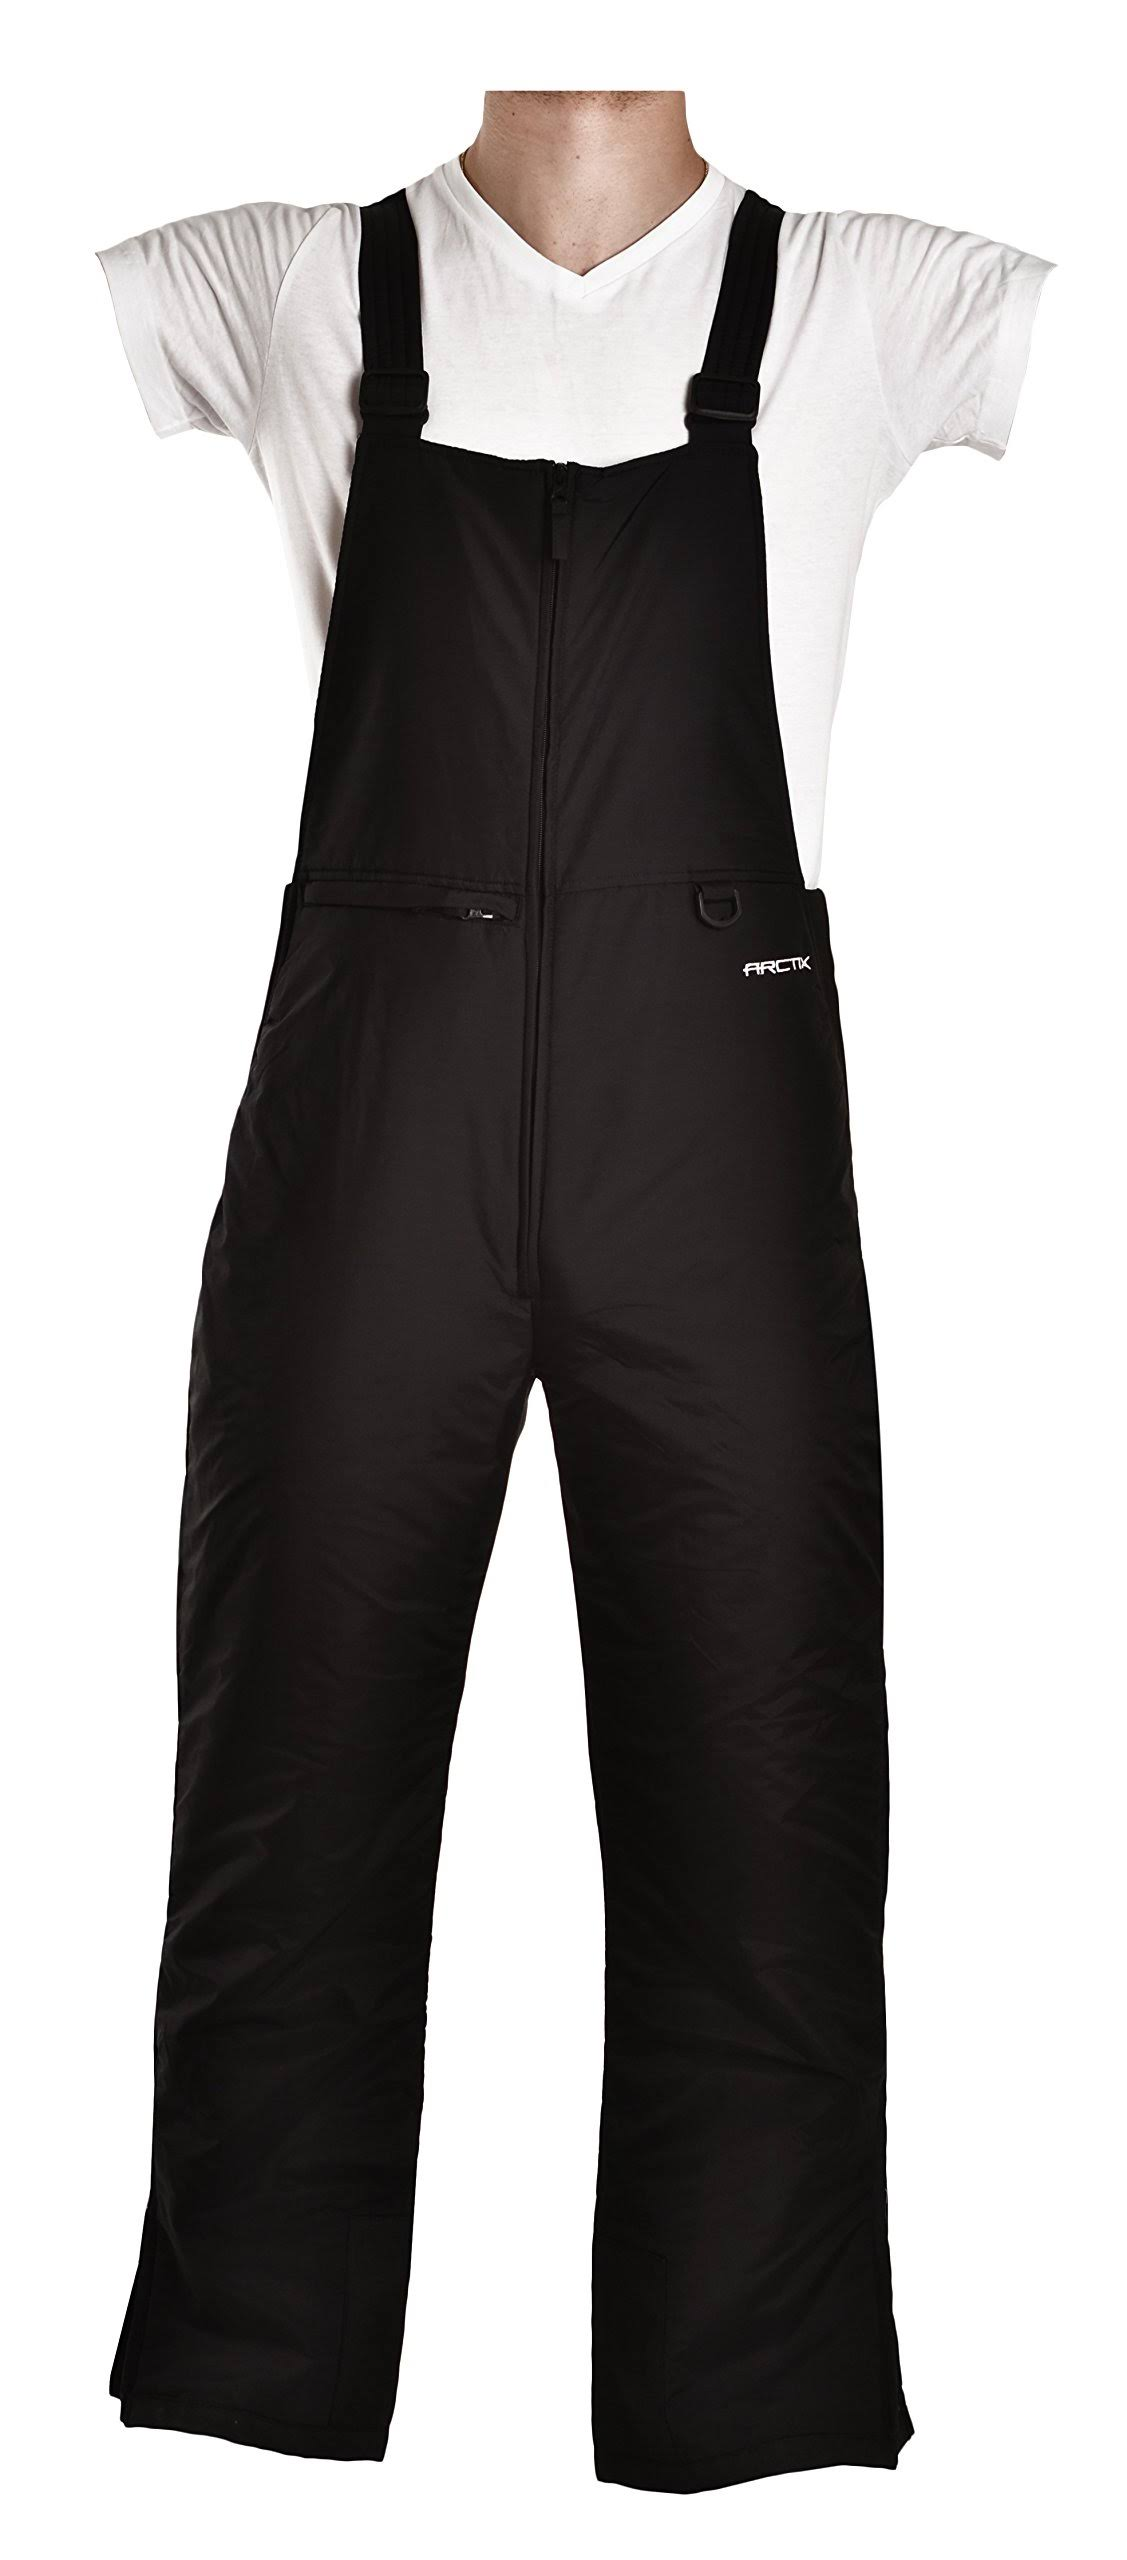 Arctix Men's Classic Bib Snow Pants - Black, X Large